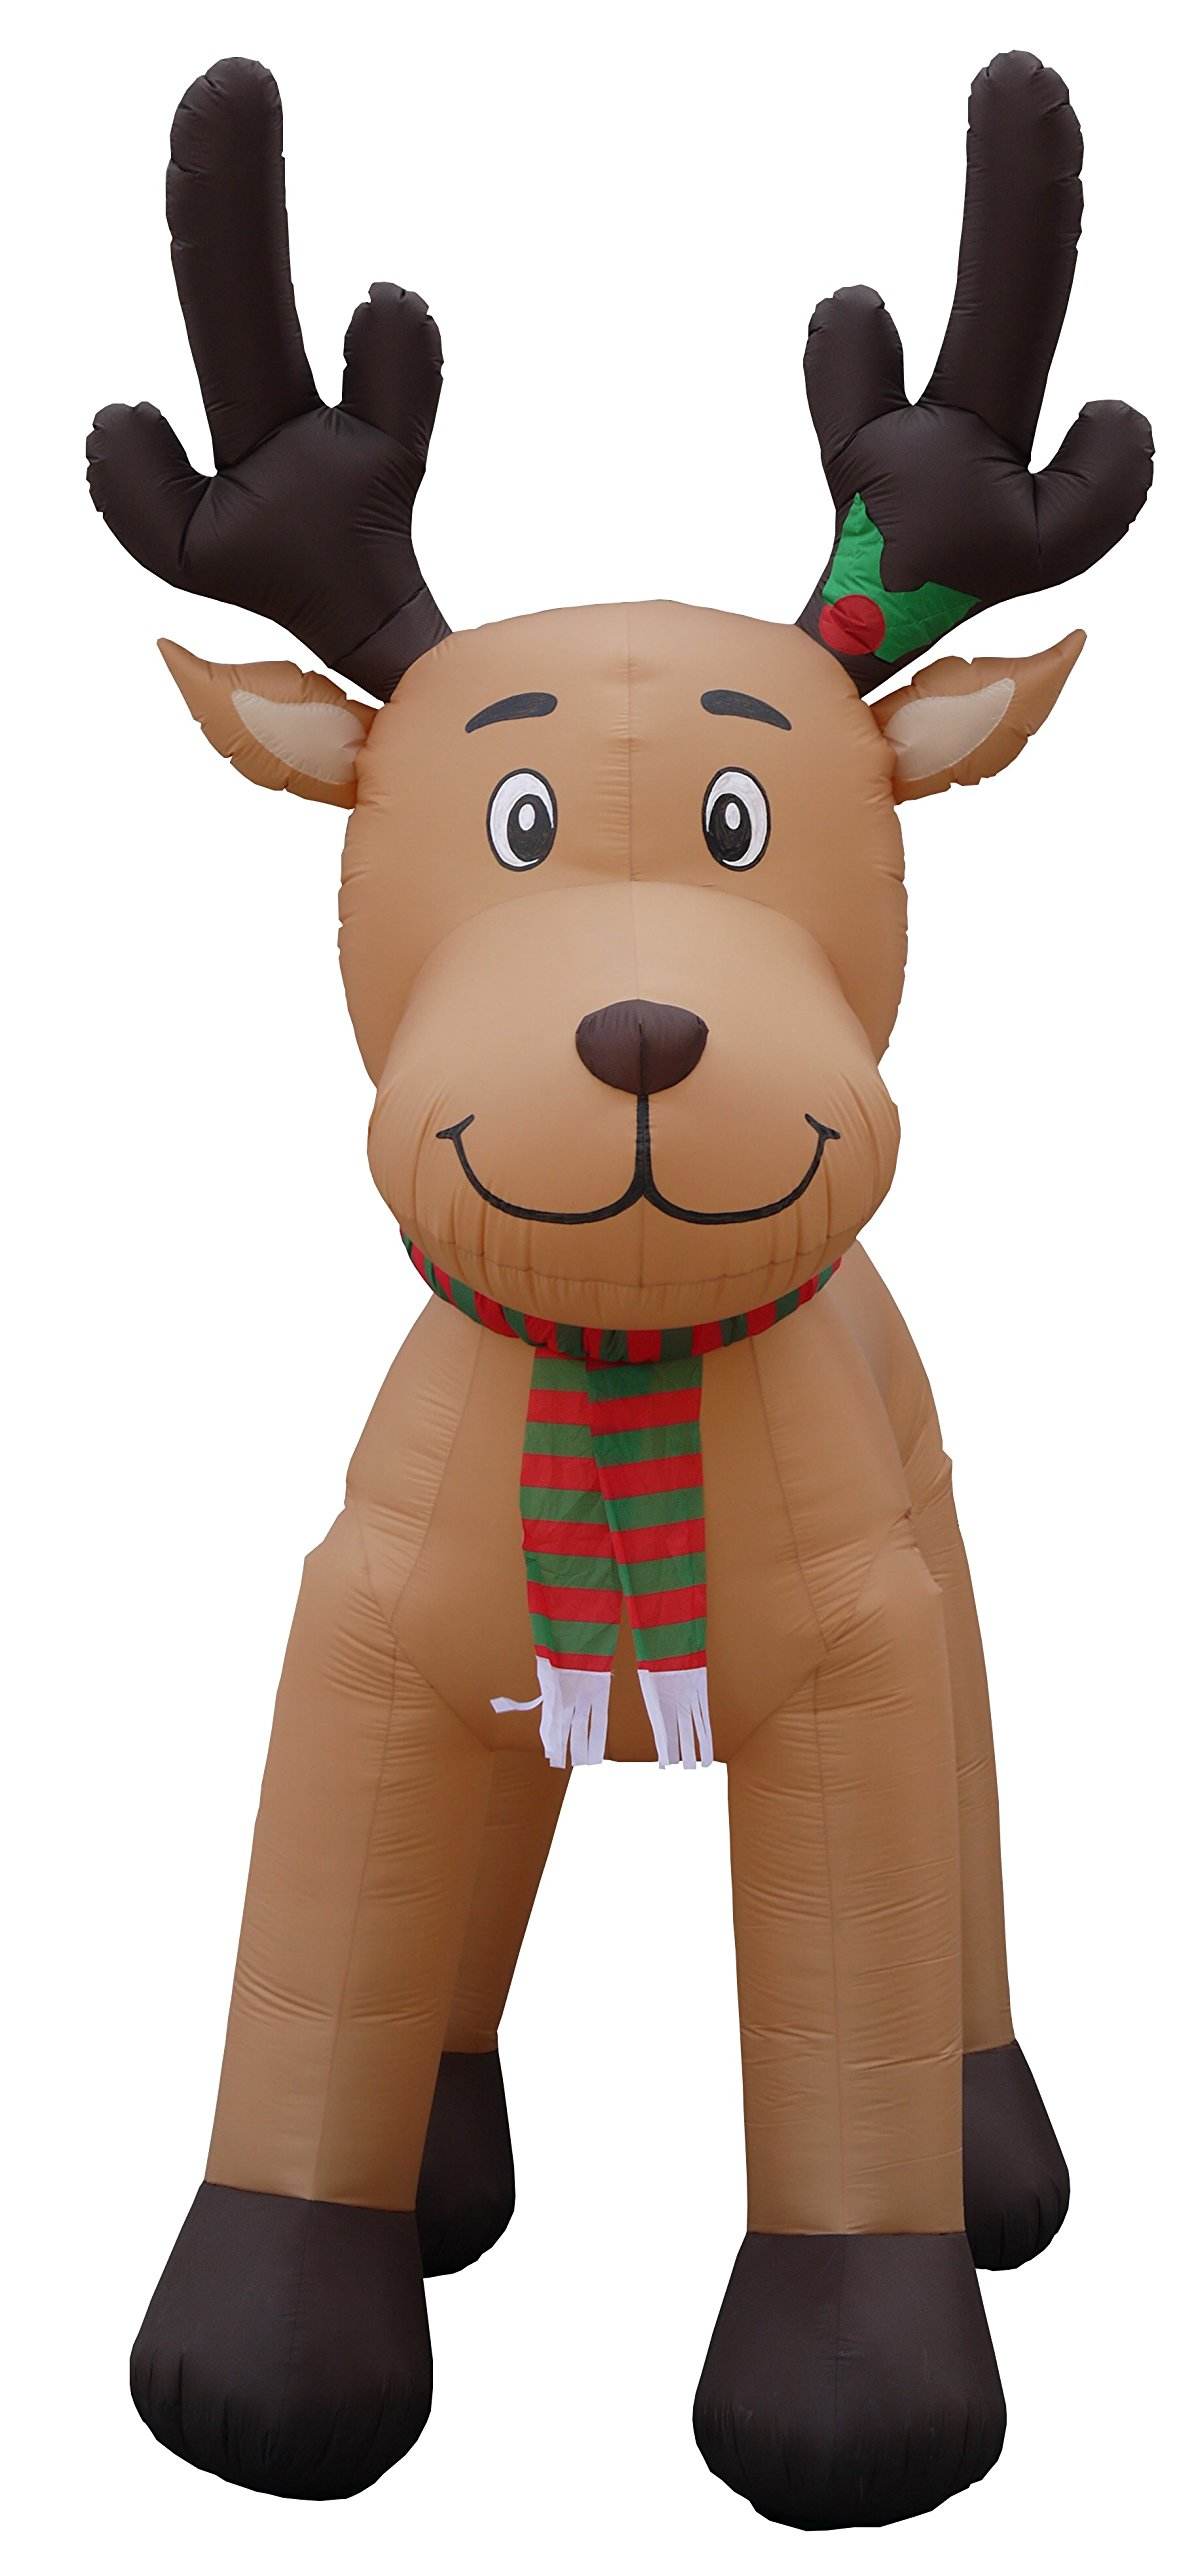 JUMBO 15 Foot Tall Christmas Inflatable Reindeer Outdoor Yard Decoration by BZB Goods (Image #2)